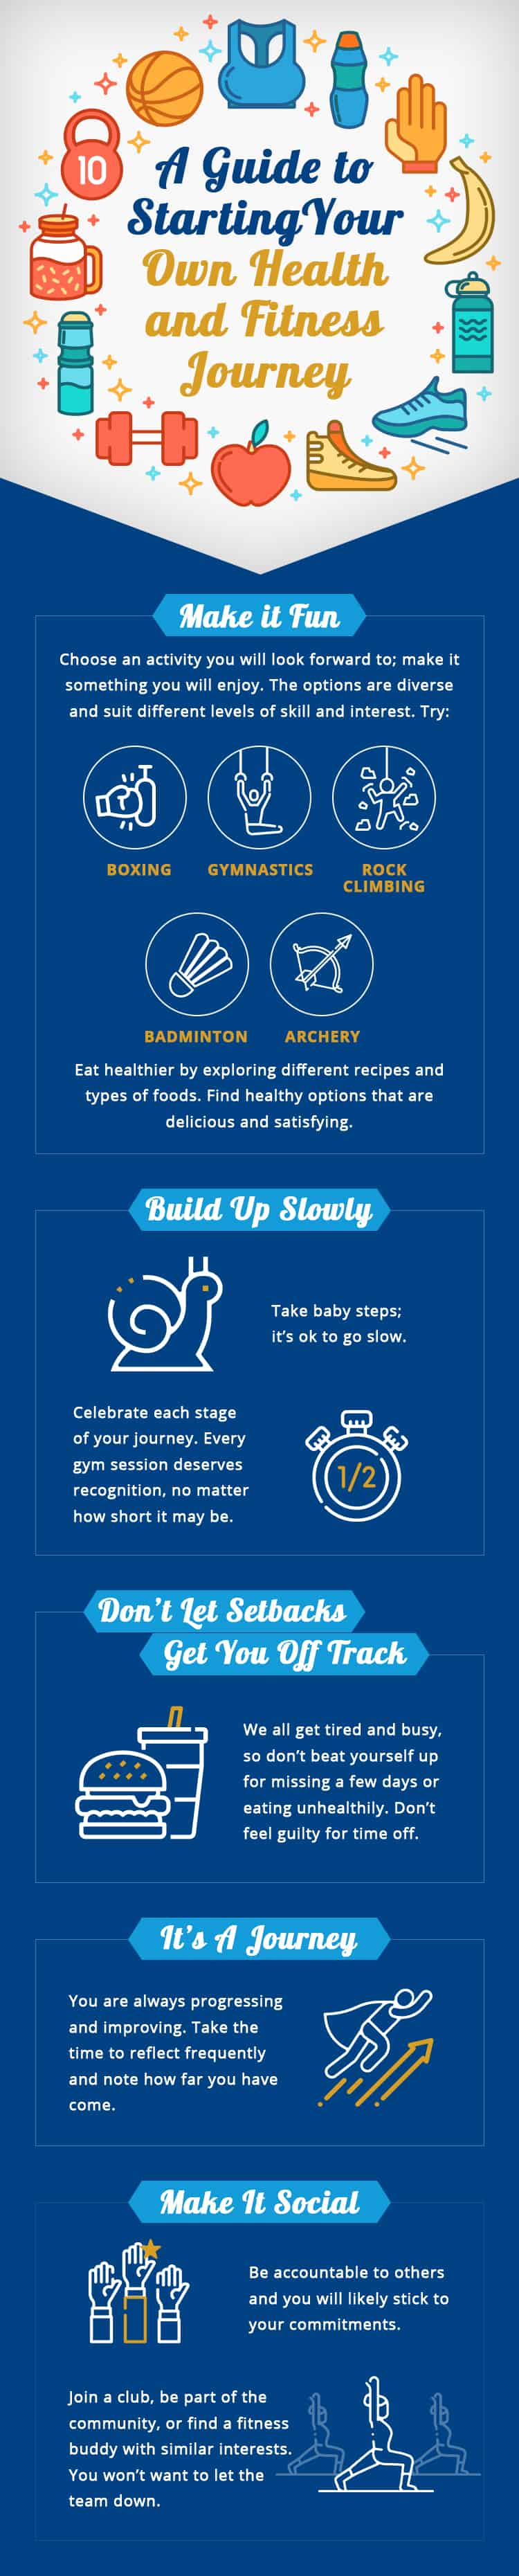 A guide to starting your own health and fitness journey